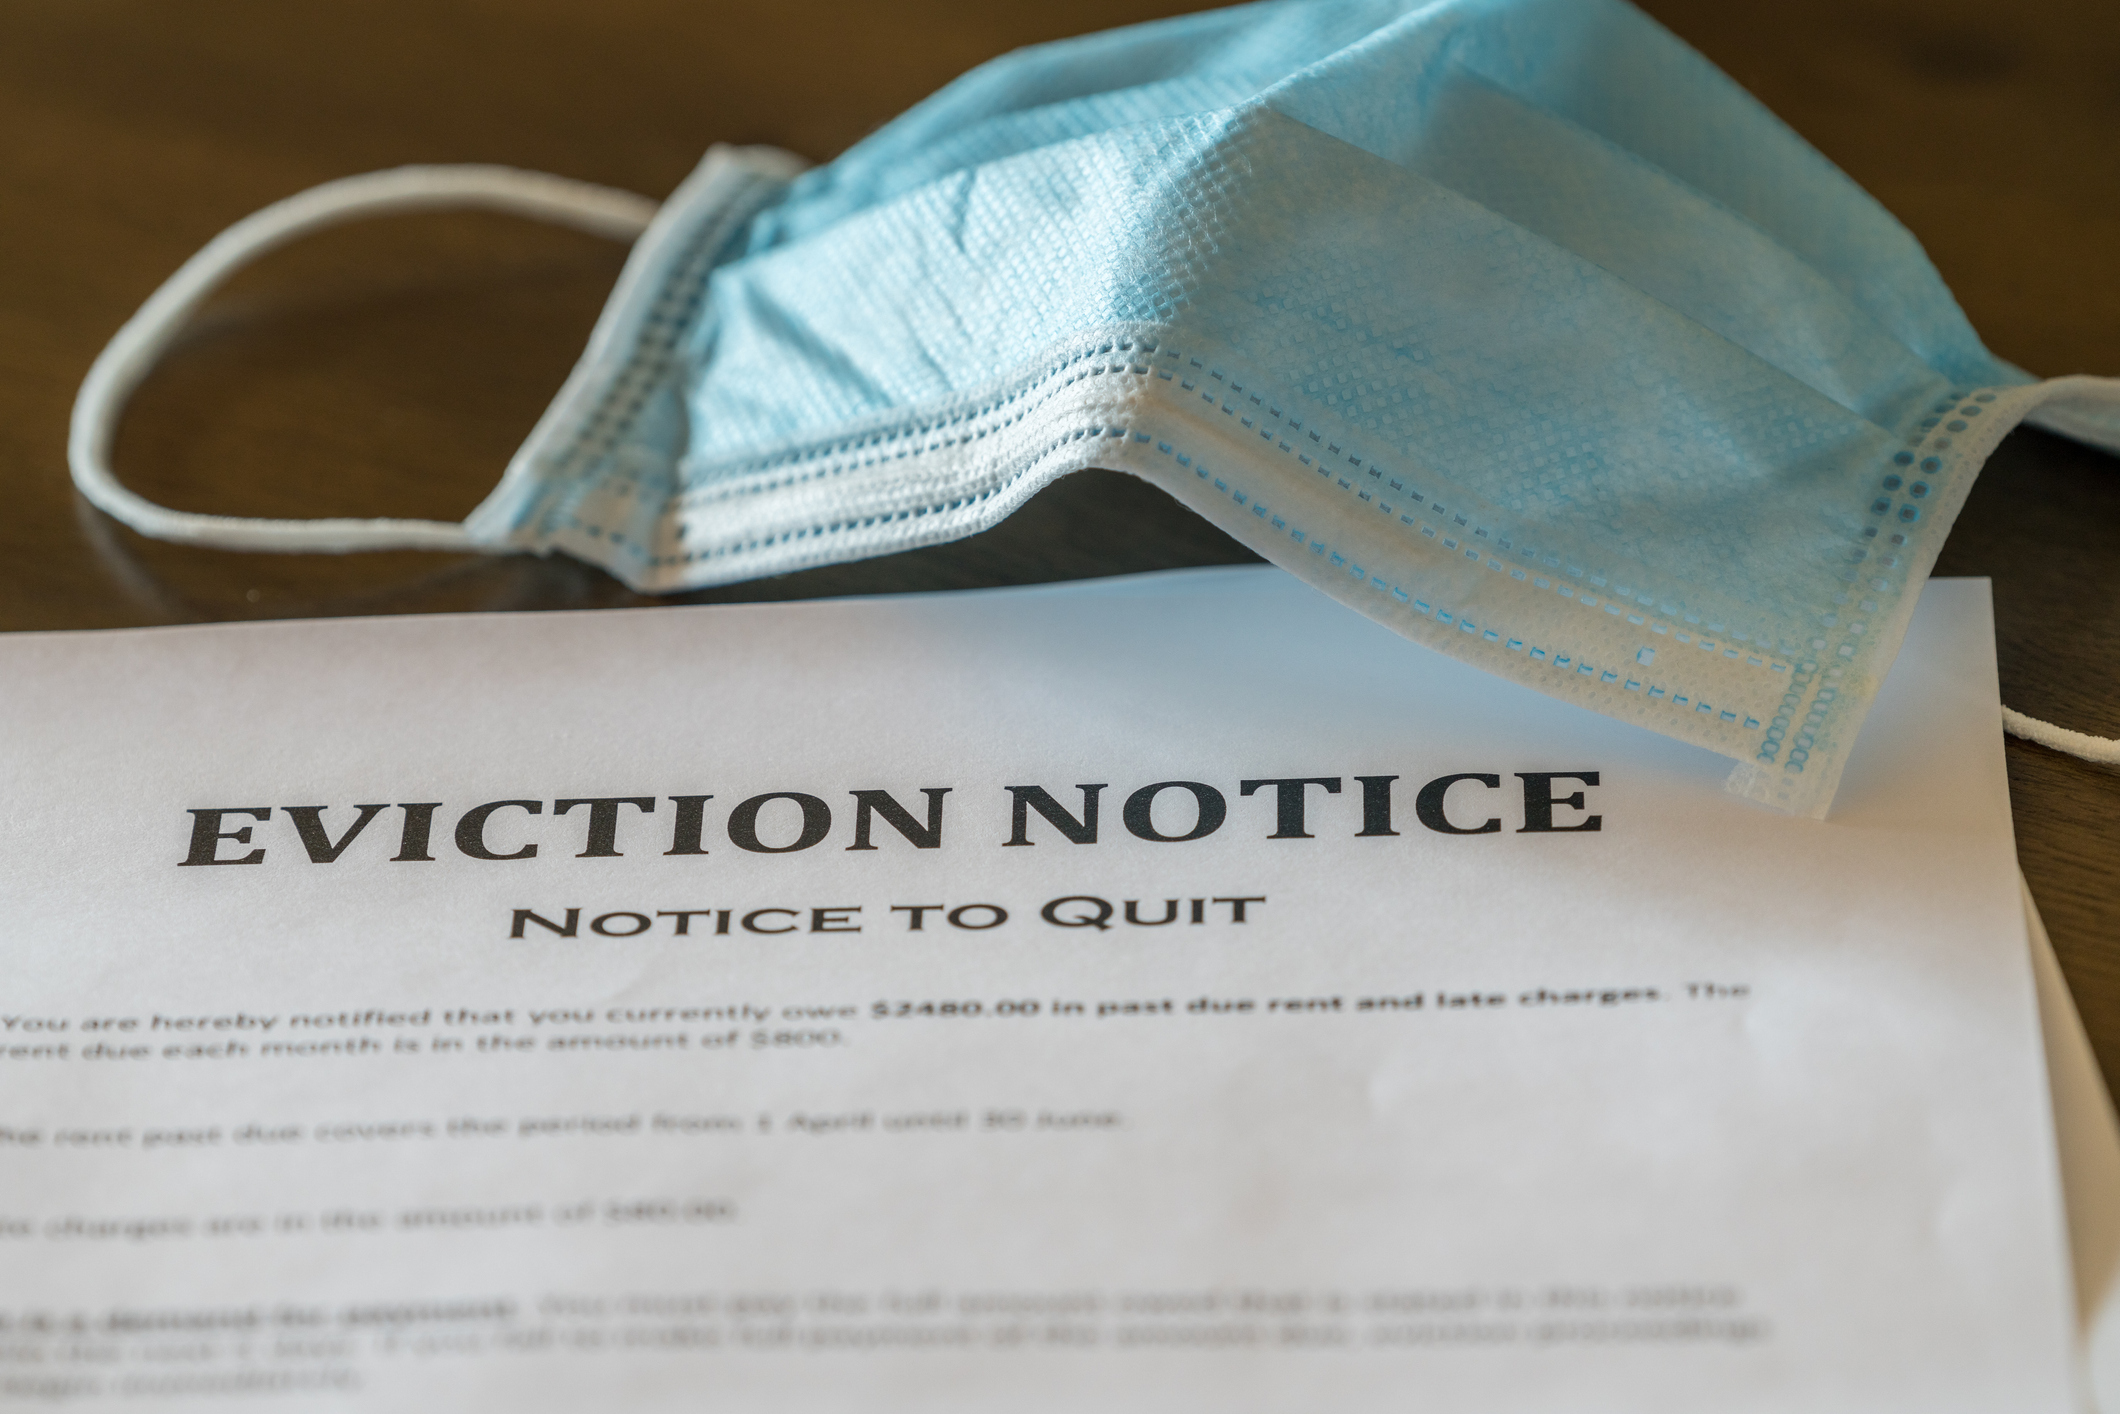 An eviction notice on a table next to a mask